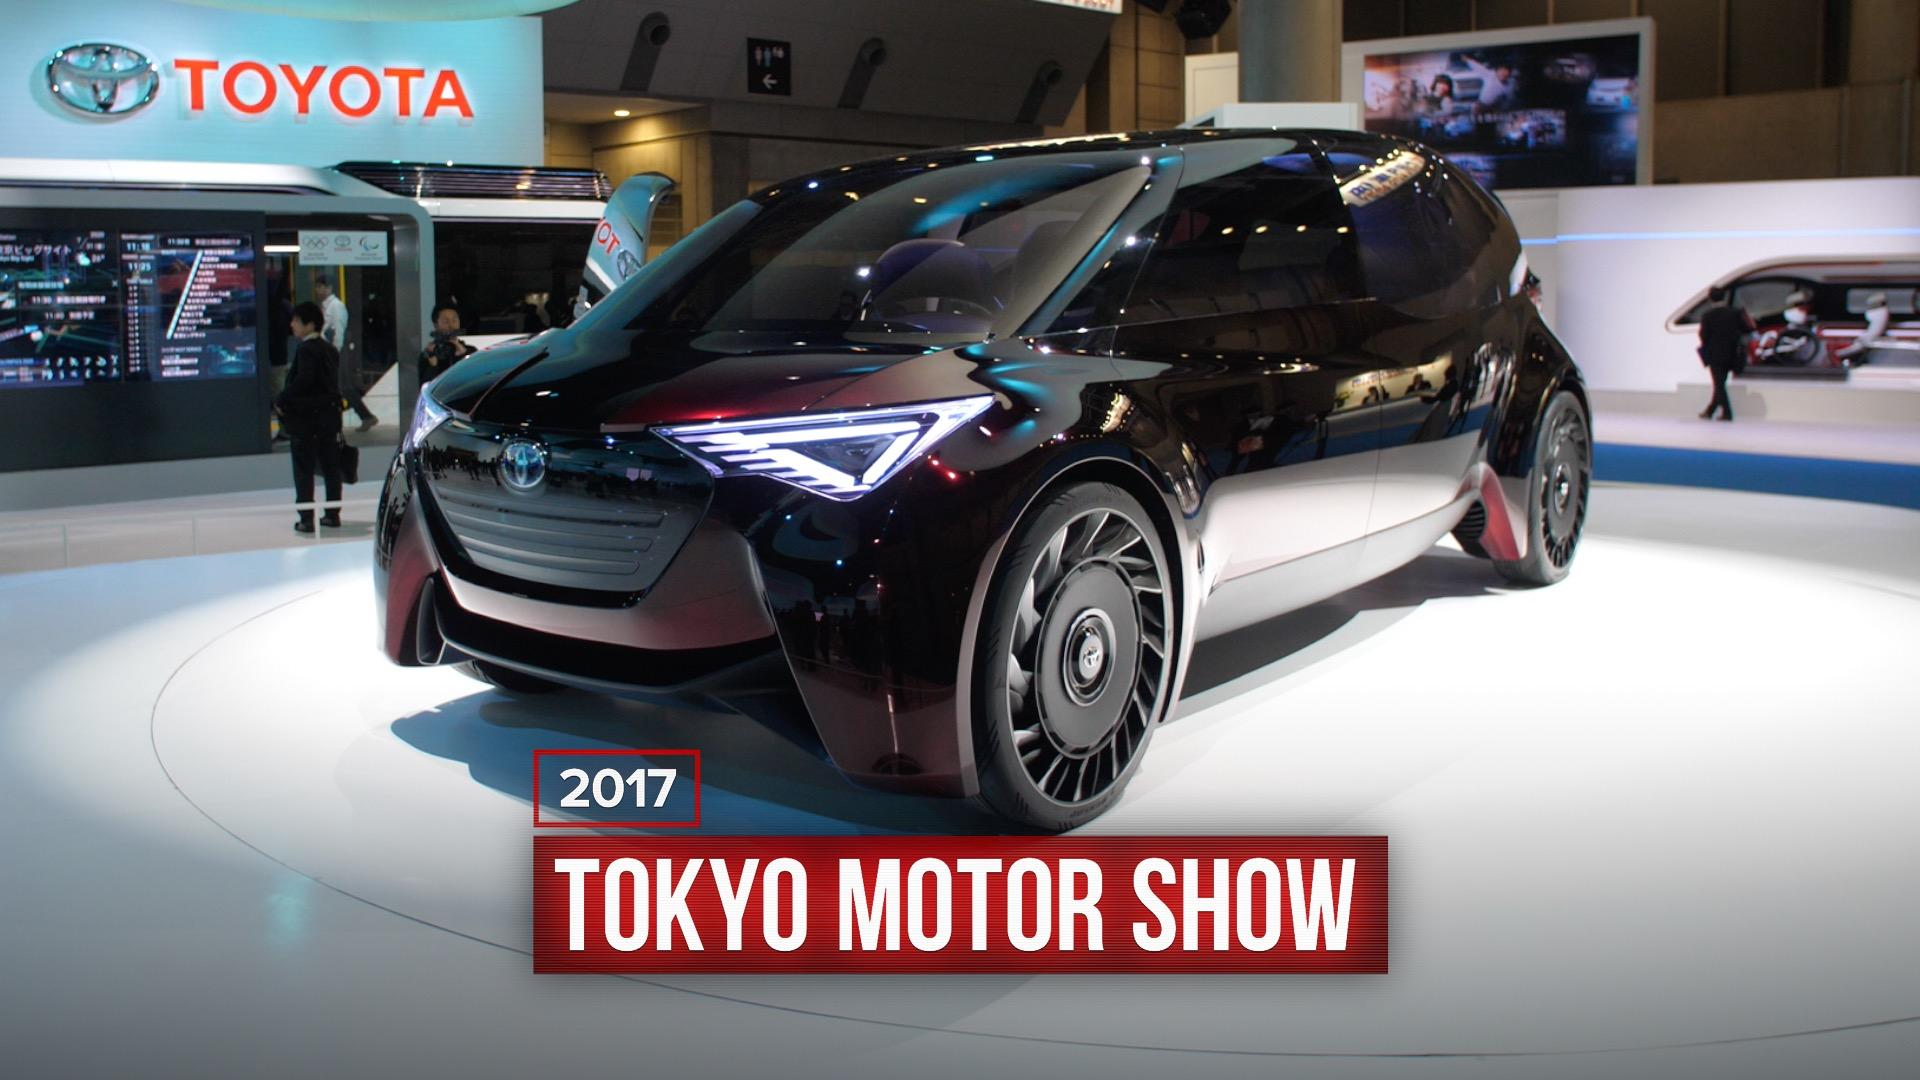 Video: Hydrogen-powered Fine-Comfort Ride concept is Toyota's luxury vision